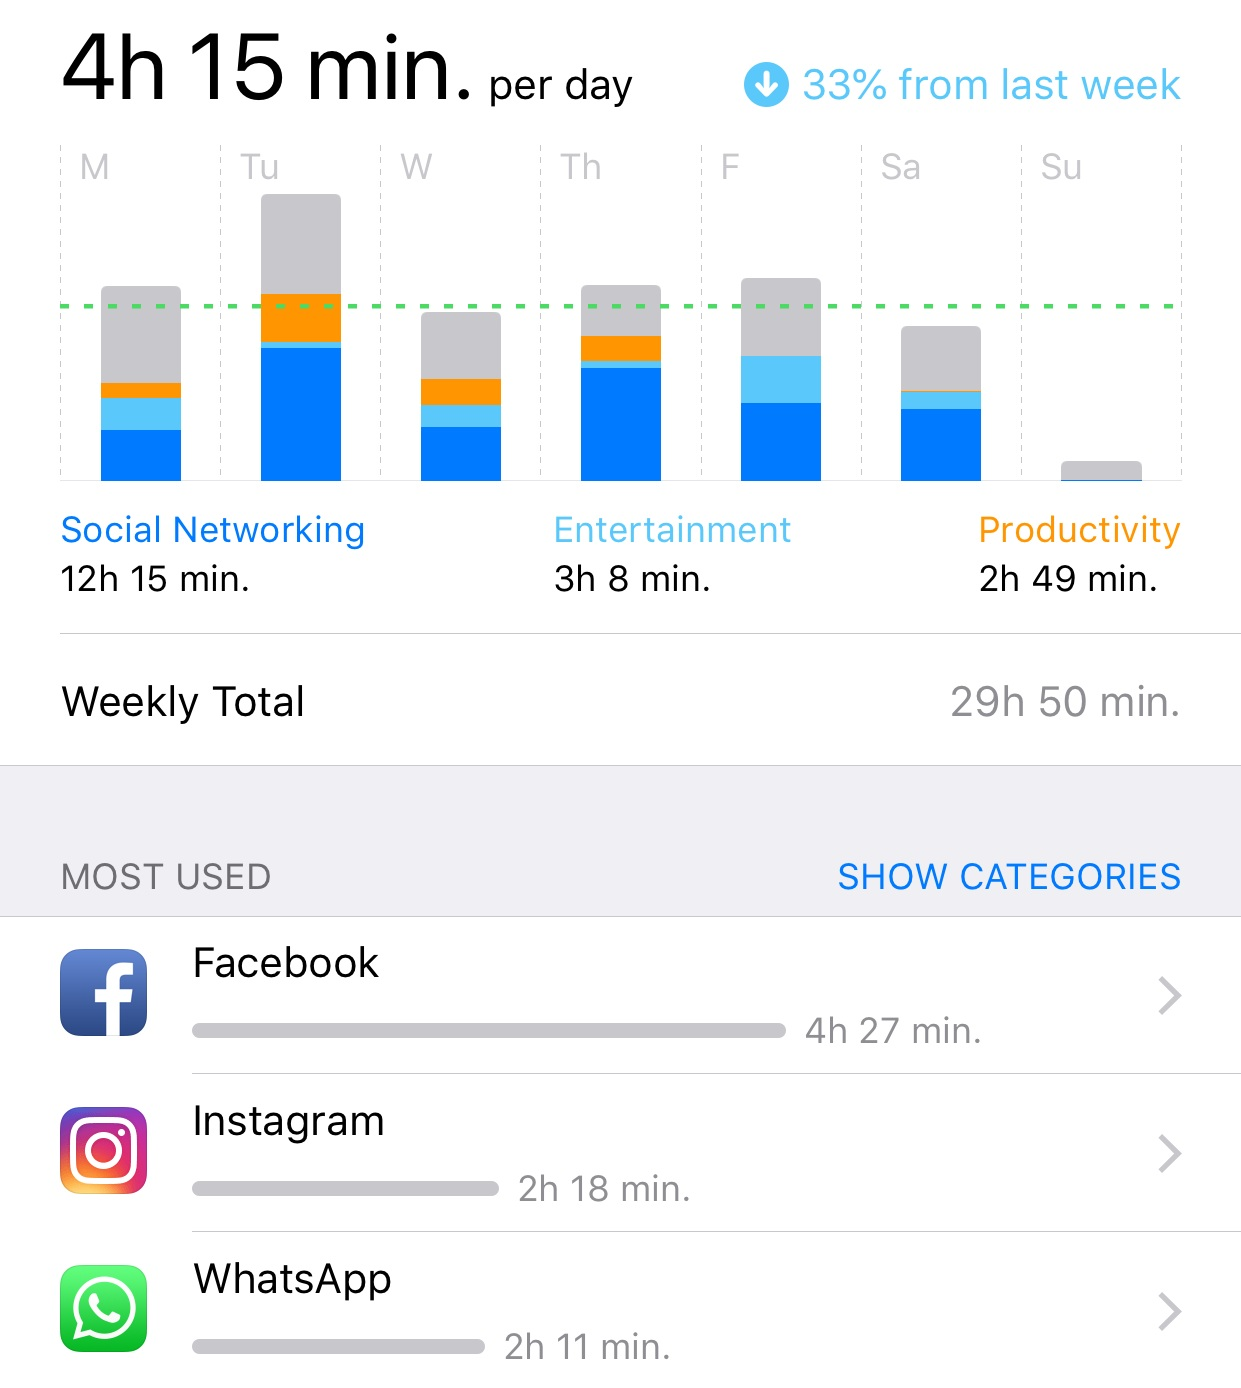 Screen time for this week. Last week I was around 6-7 hours per day so already seeing an improvement!